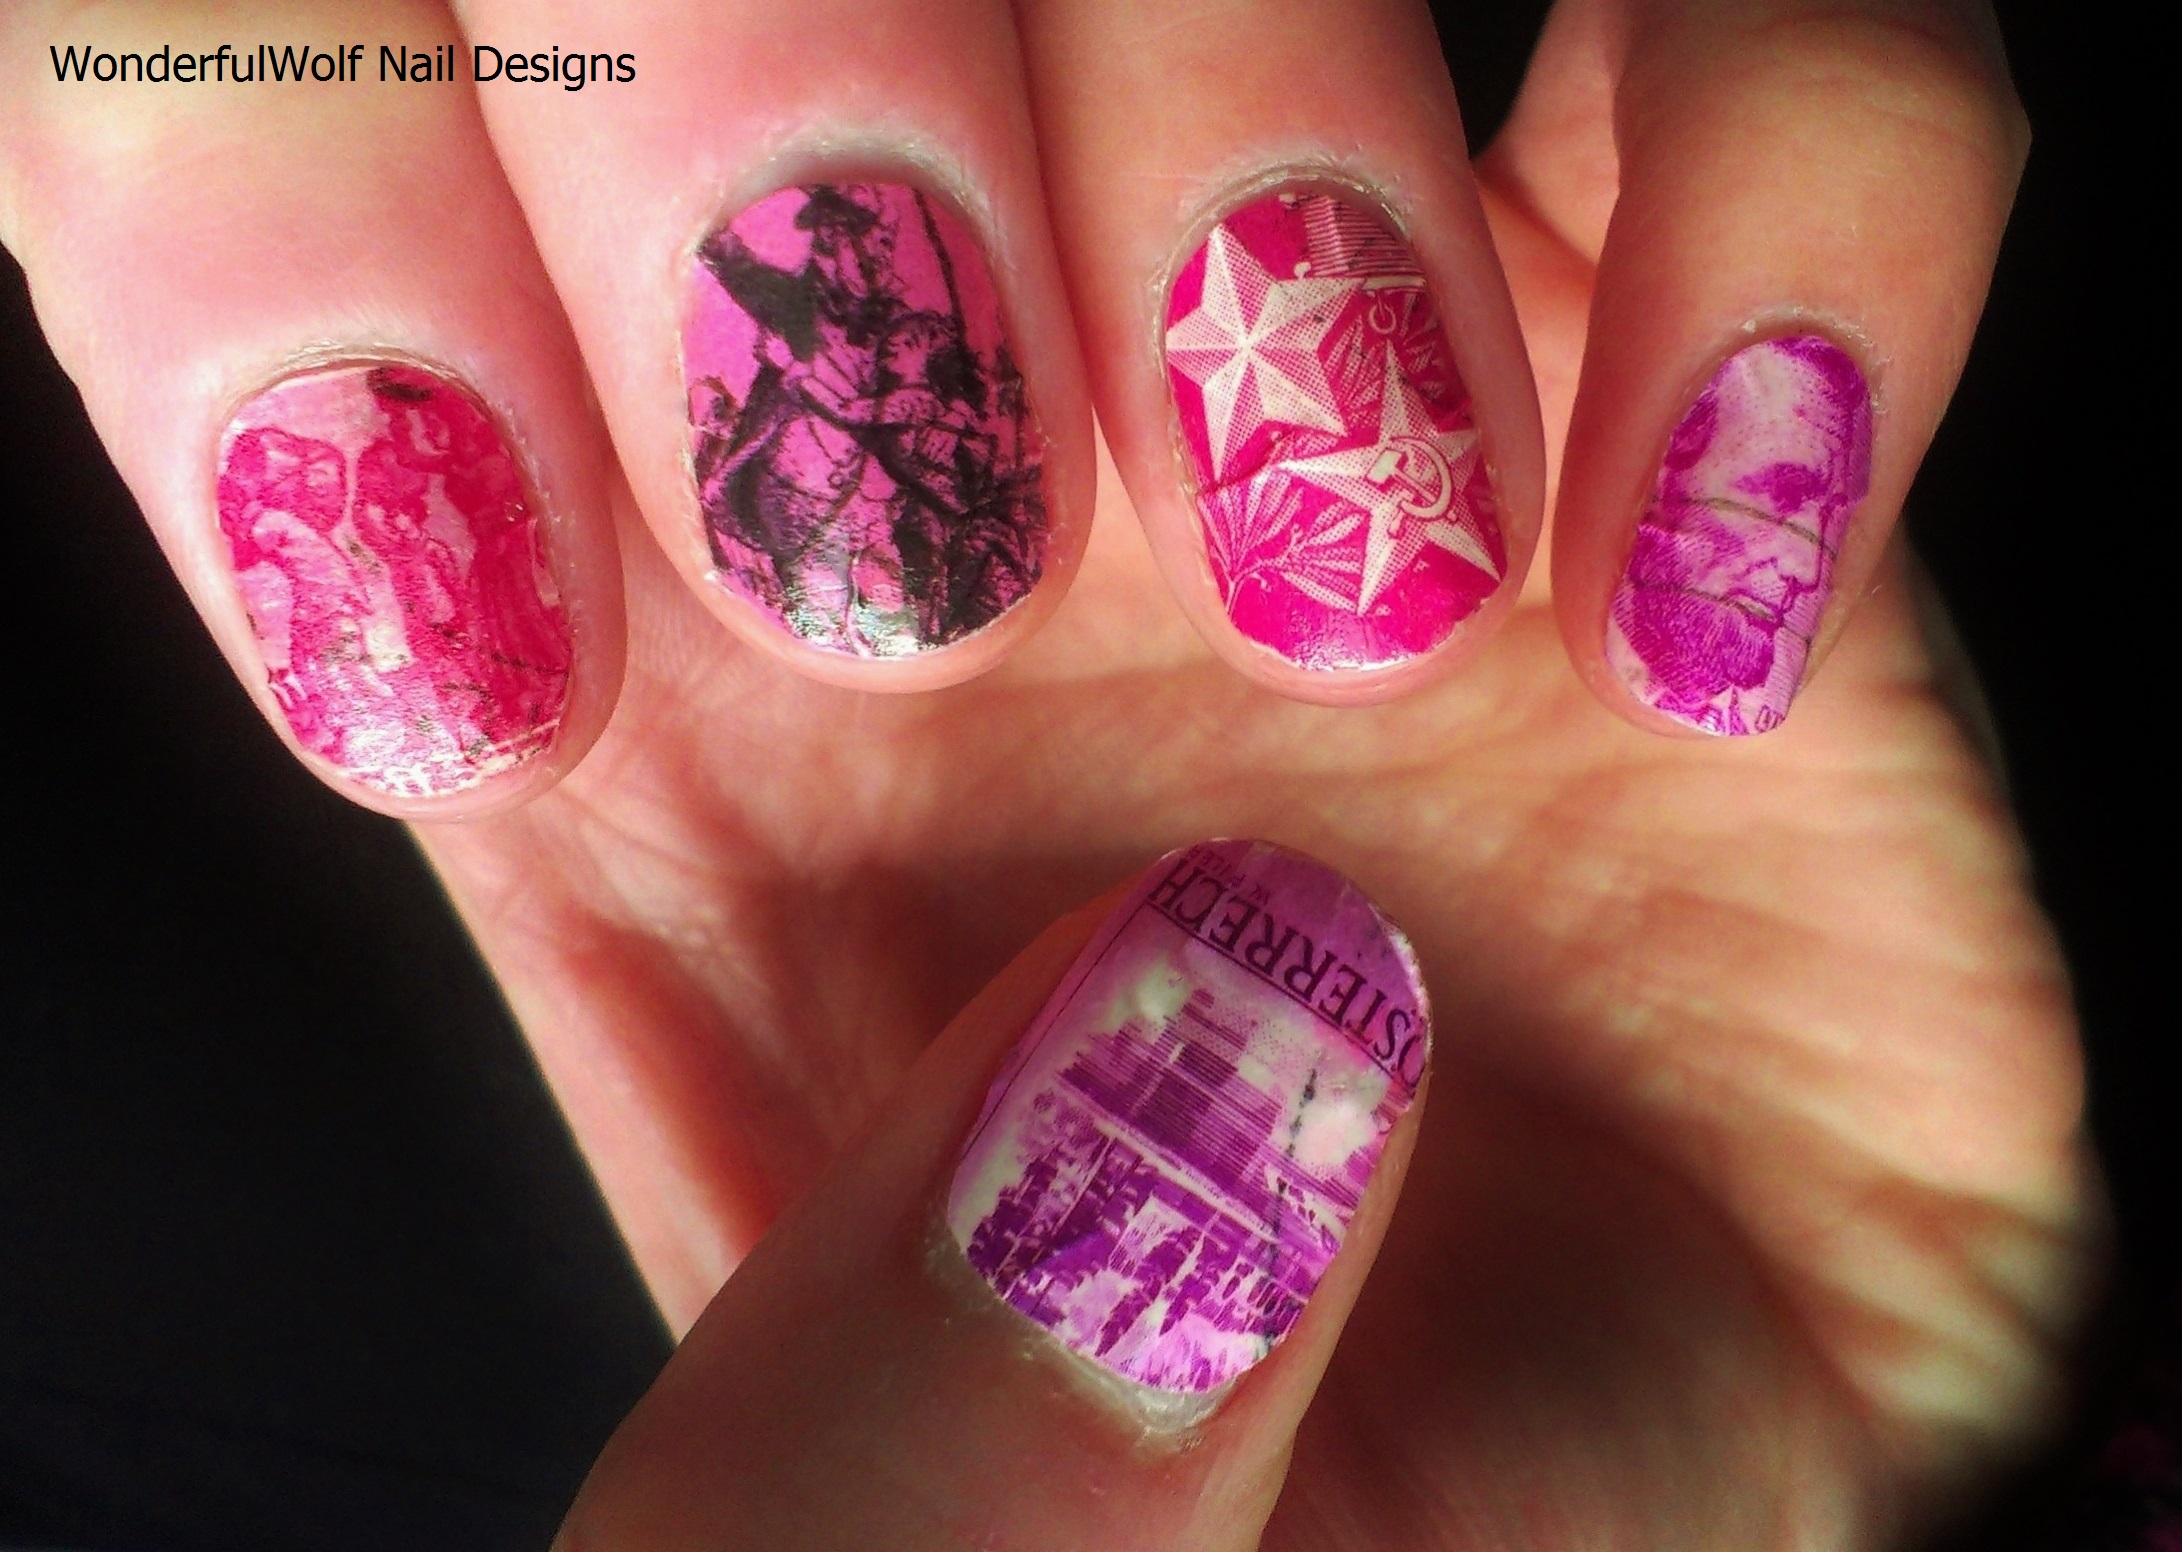 ... in wonderfulwolf nail art tagged mail stamps nails nail art nail